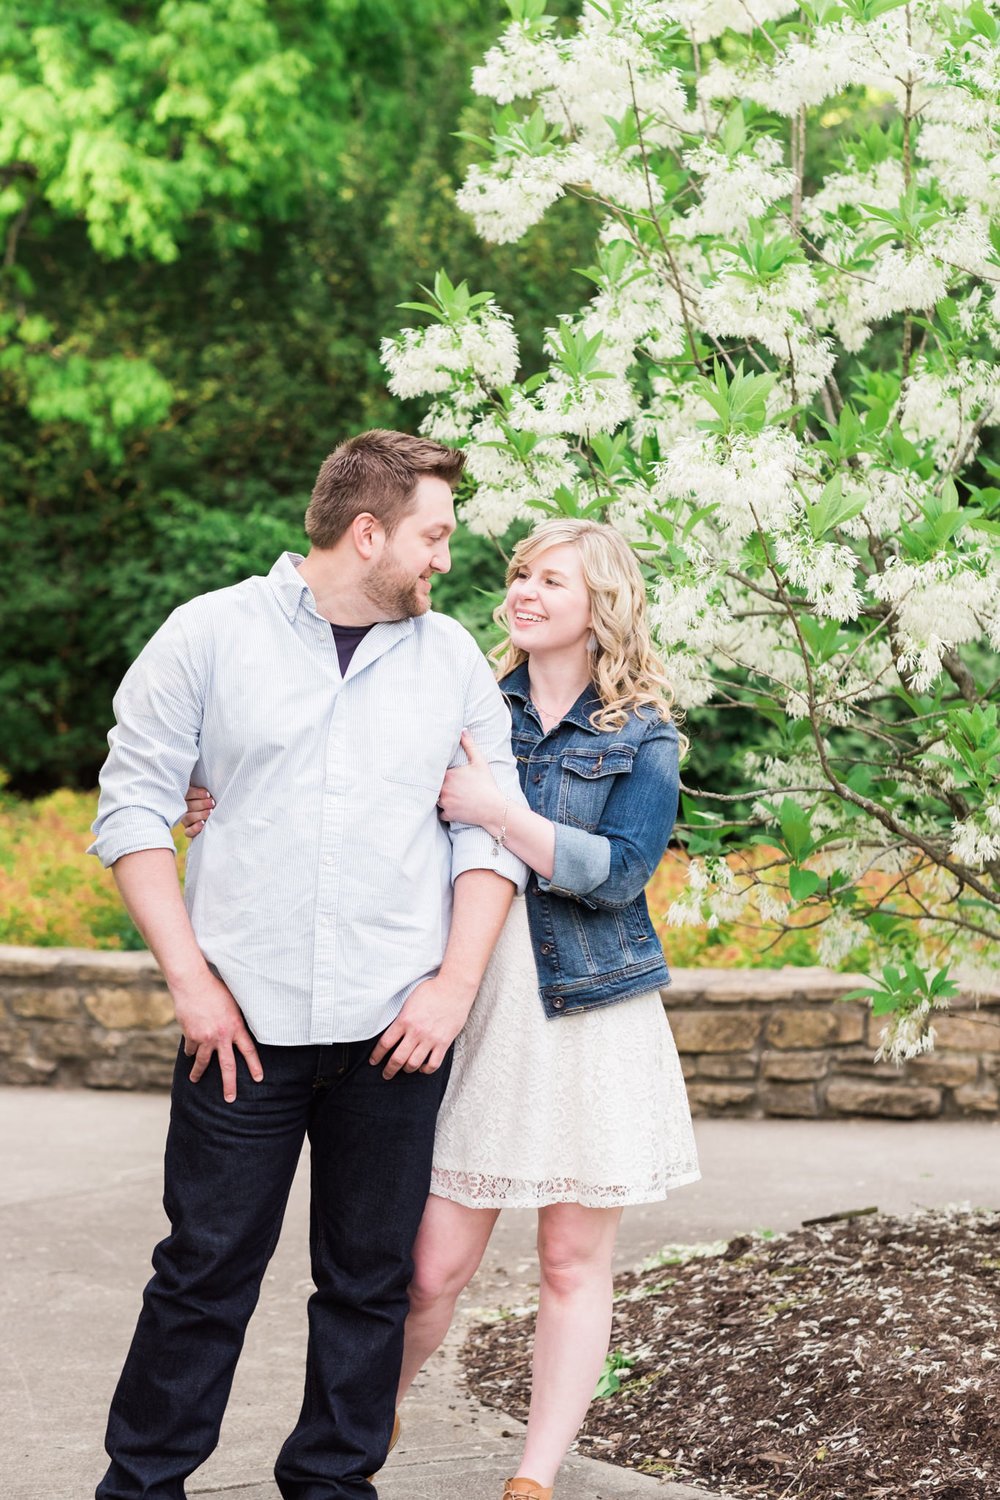 Lauren&Zach_Engagement_Blog_0012.jpg